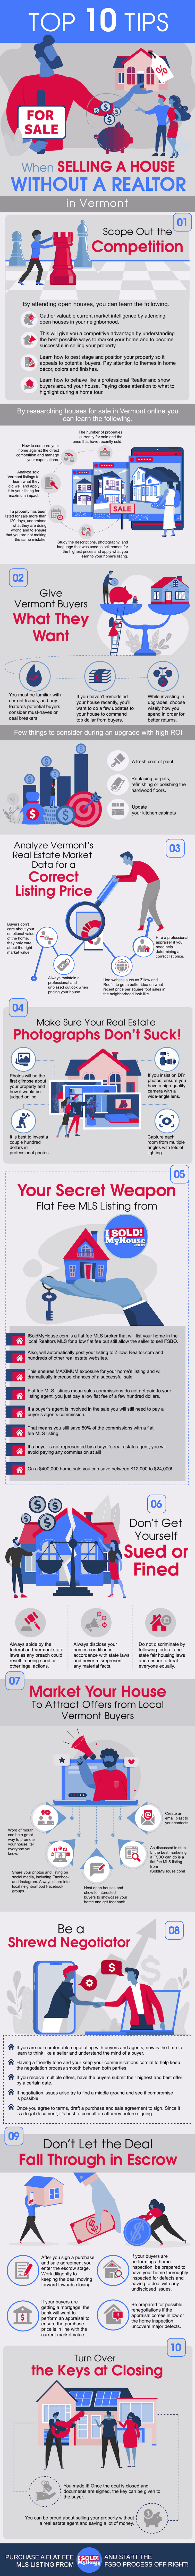 infographic of the 10 steps to sell a house in vermont without an agent